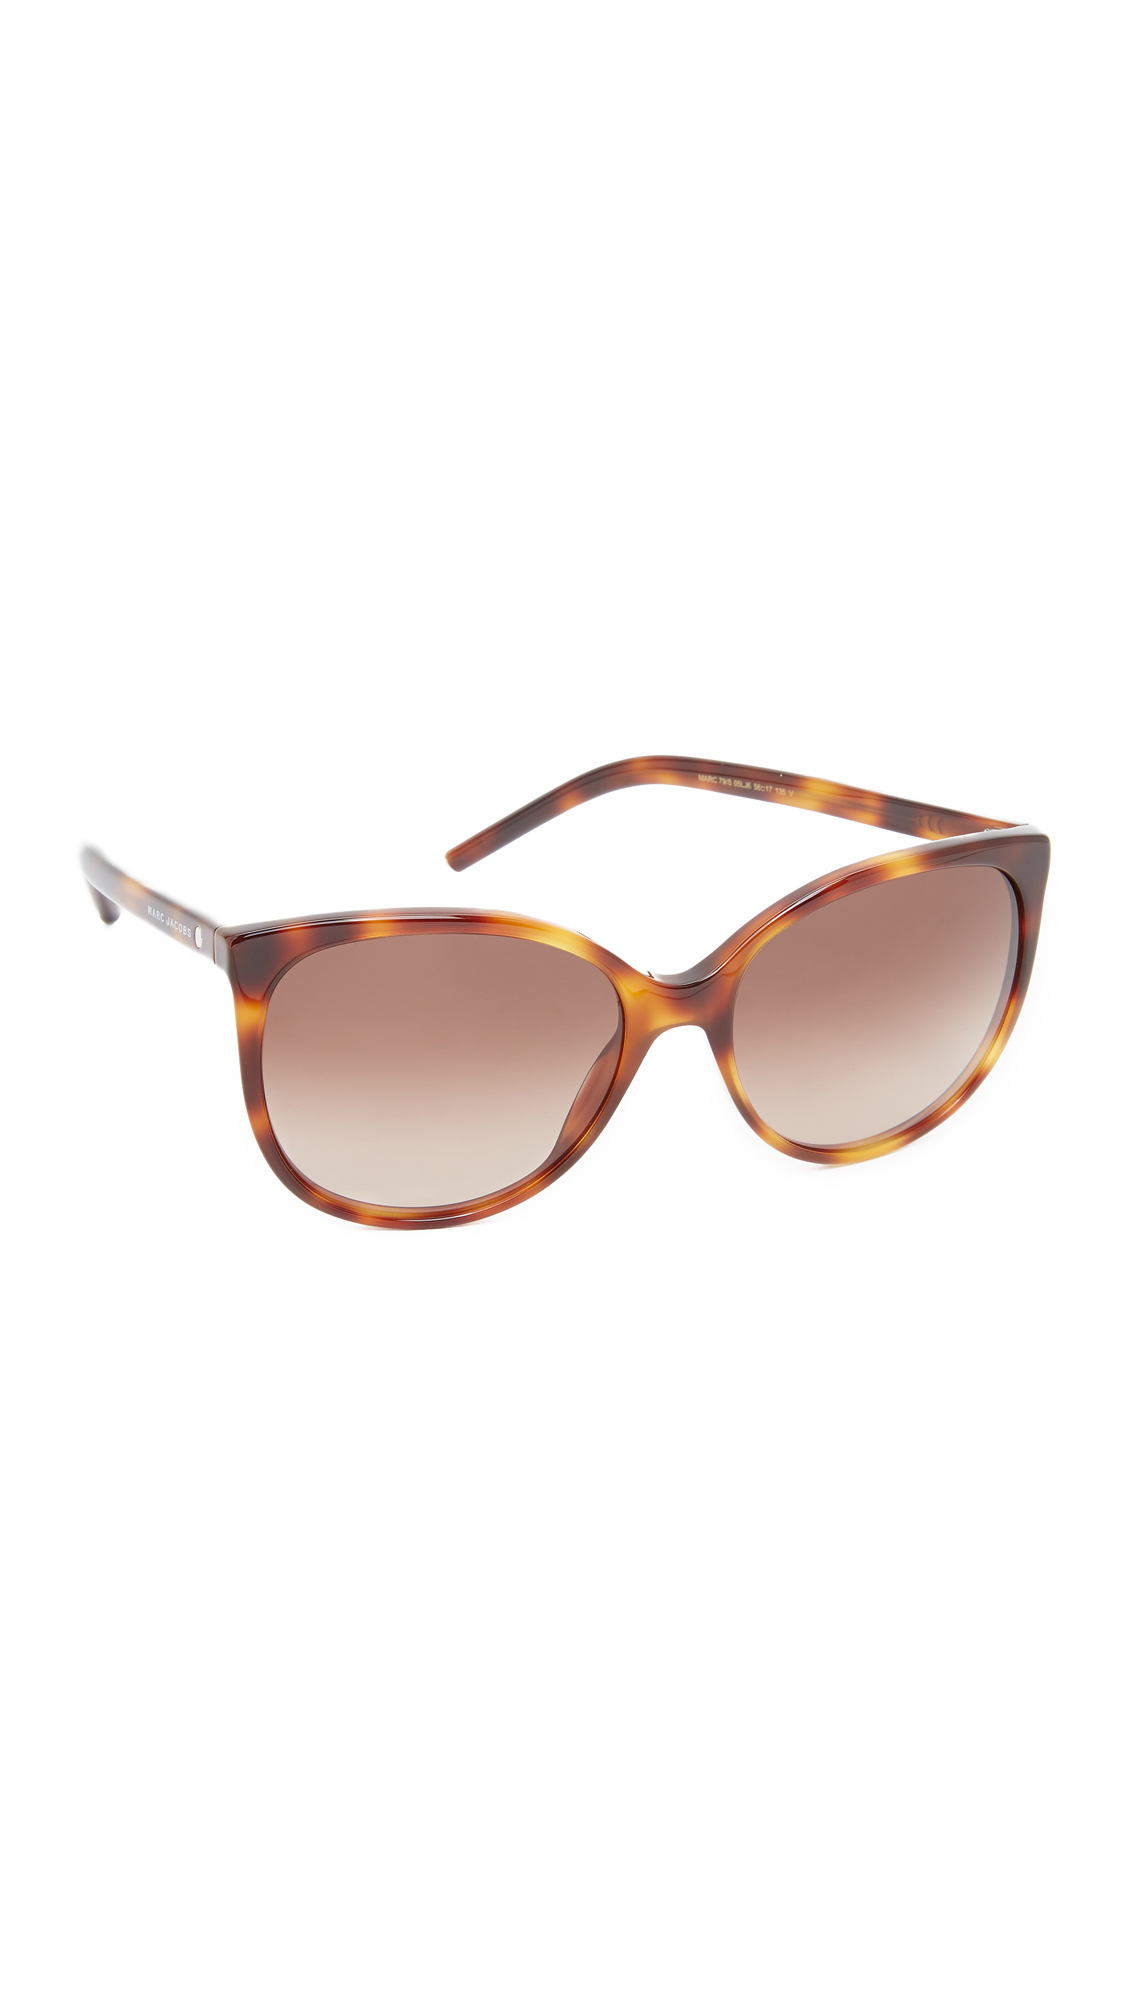 marc jacobs female 211469 marc jacobs easy to wear cat eye sunglasses havanabrown